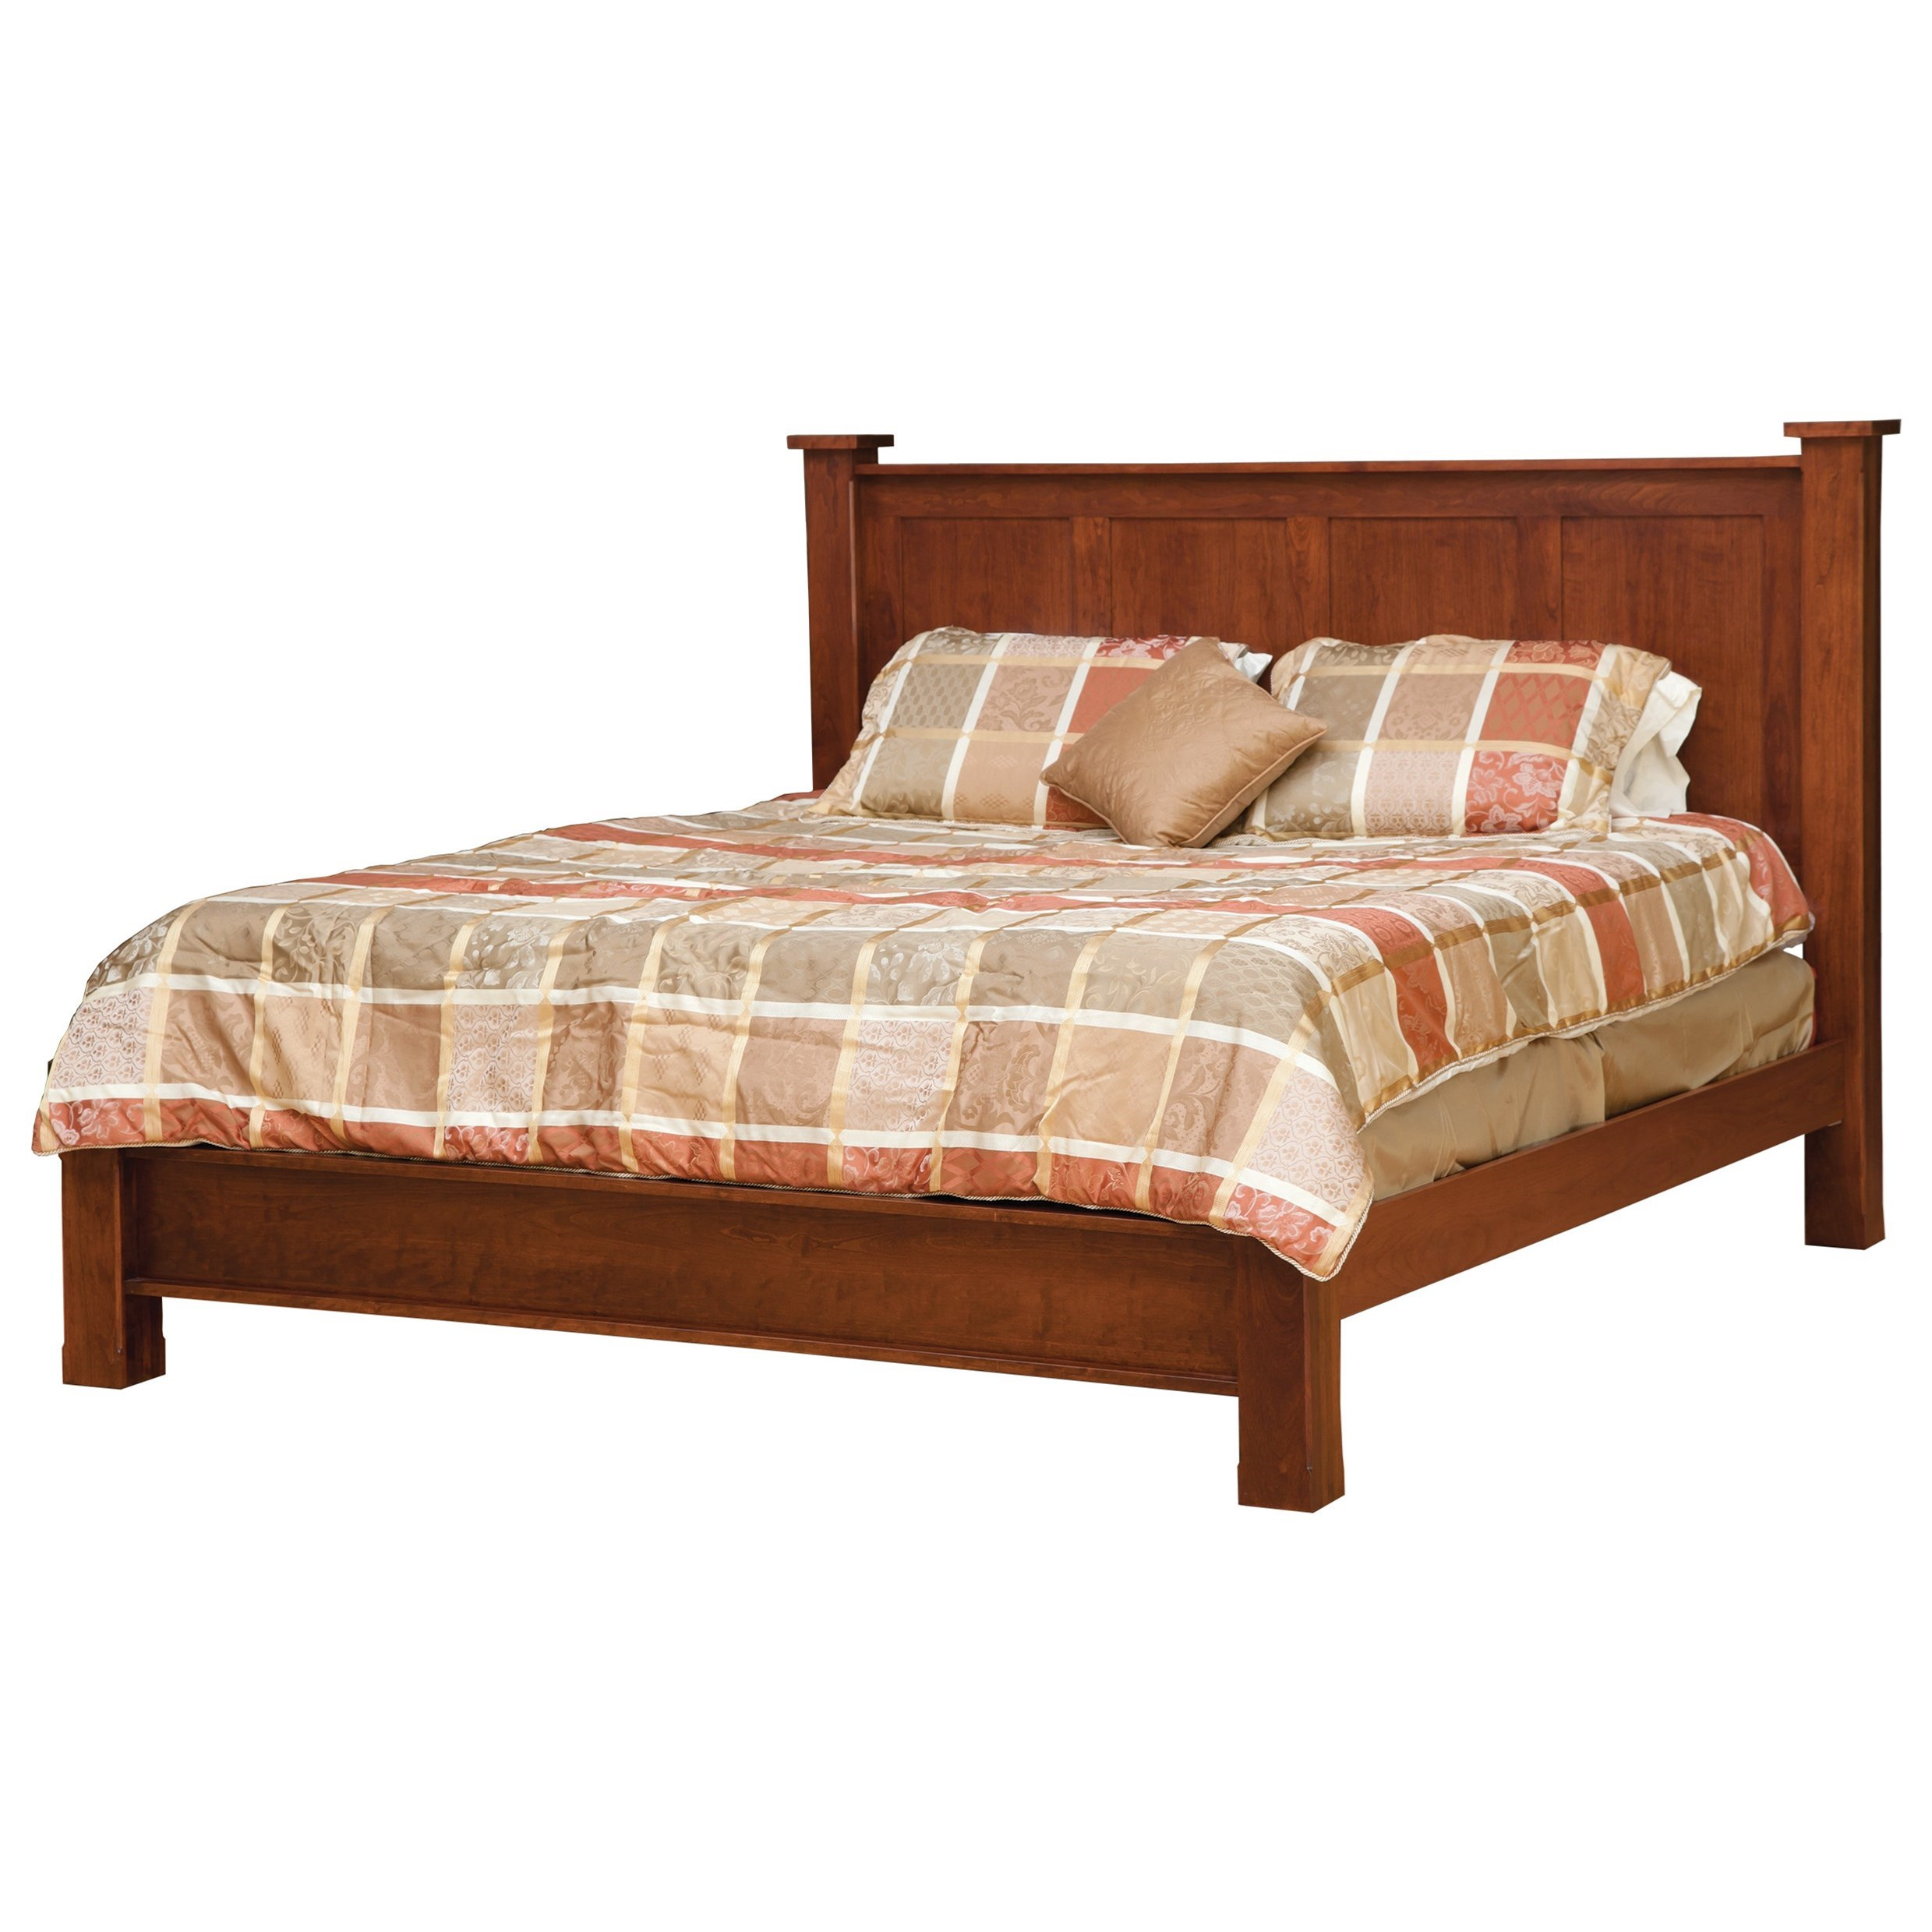 Full Bed with Low Footboard